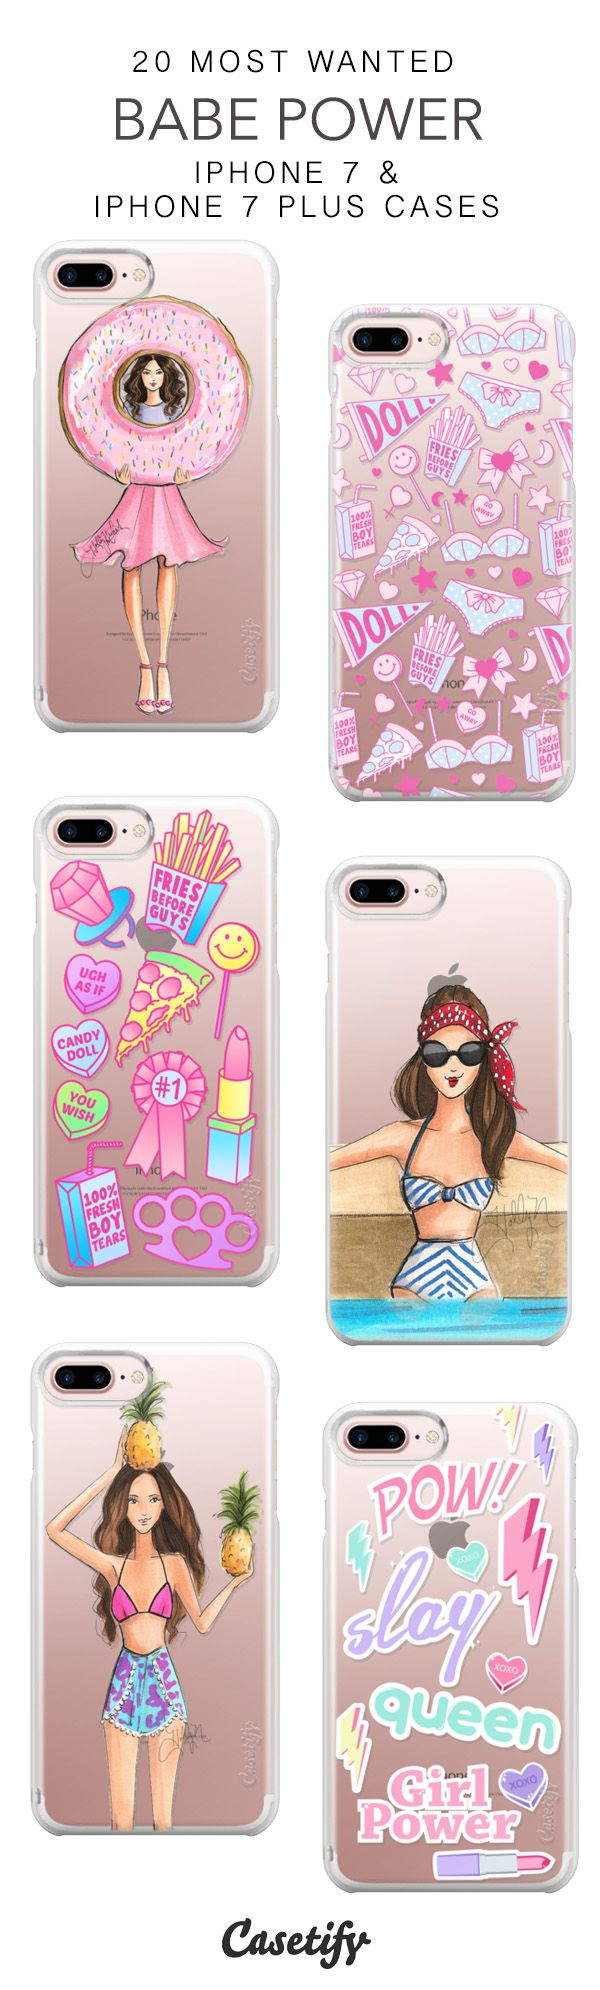 20 Most Wanted Babe Power Protective iPhone 7 Cases and iPhone 7 Plus Cases. More Girls Power iPhone case here > https://www.casetify.com/collections/top_100_designs#/?vc=vvJ1231D5p